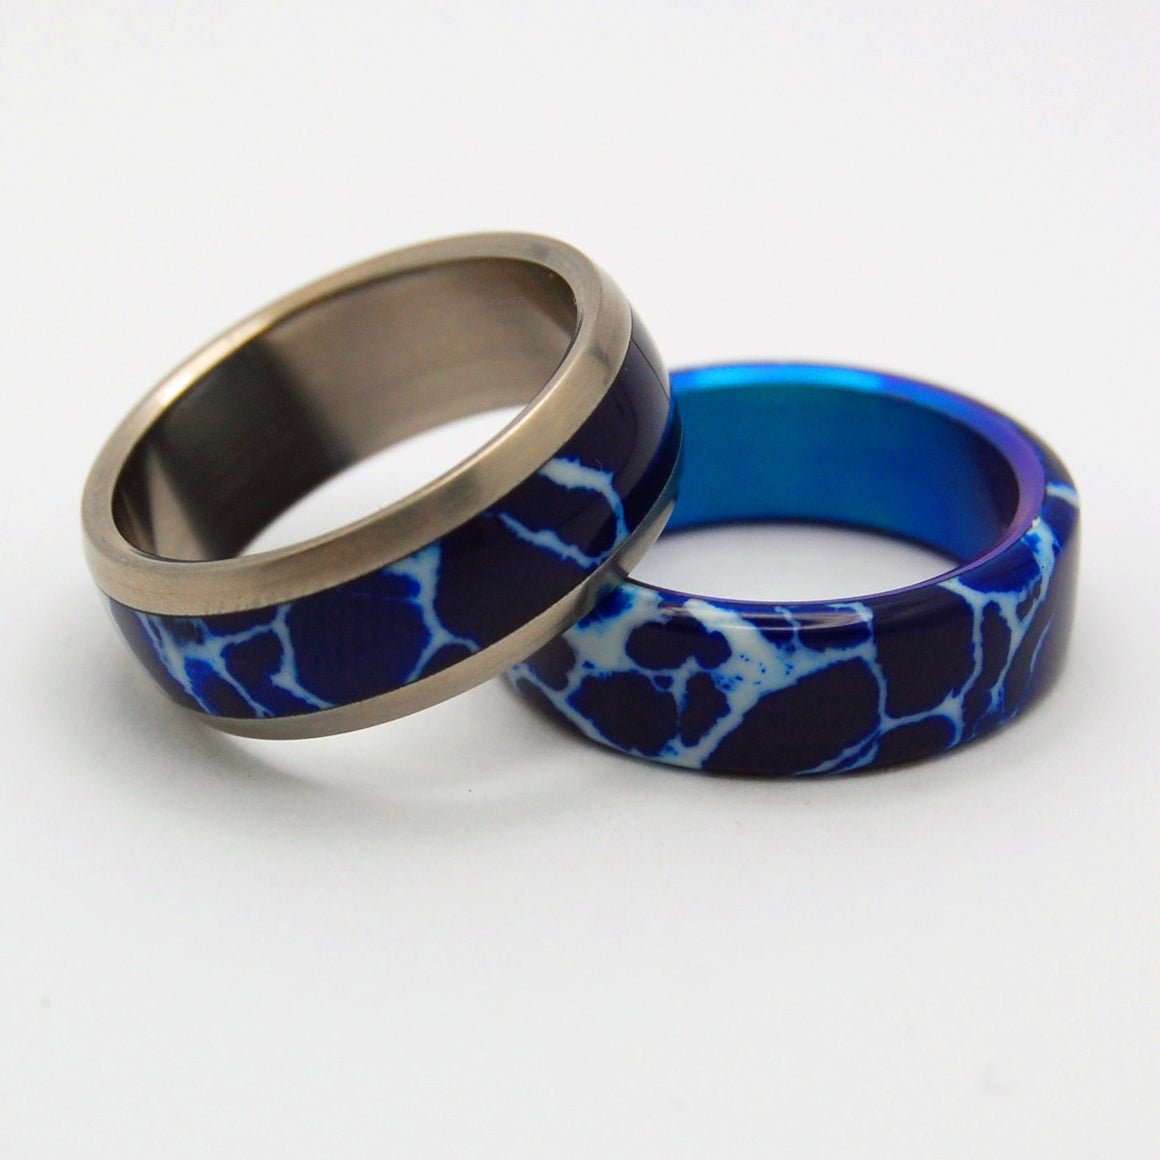 GOBLIN ORE DROP | Cobalt Stone - Titanium Handcrafted Wedding Rings Set - Minter and Richter Designs